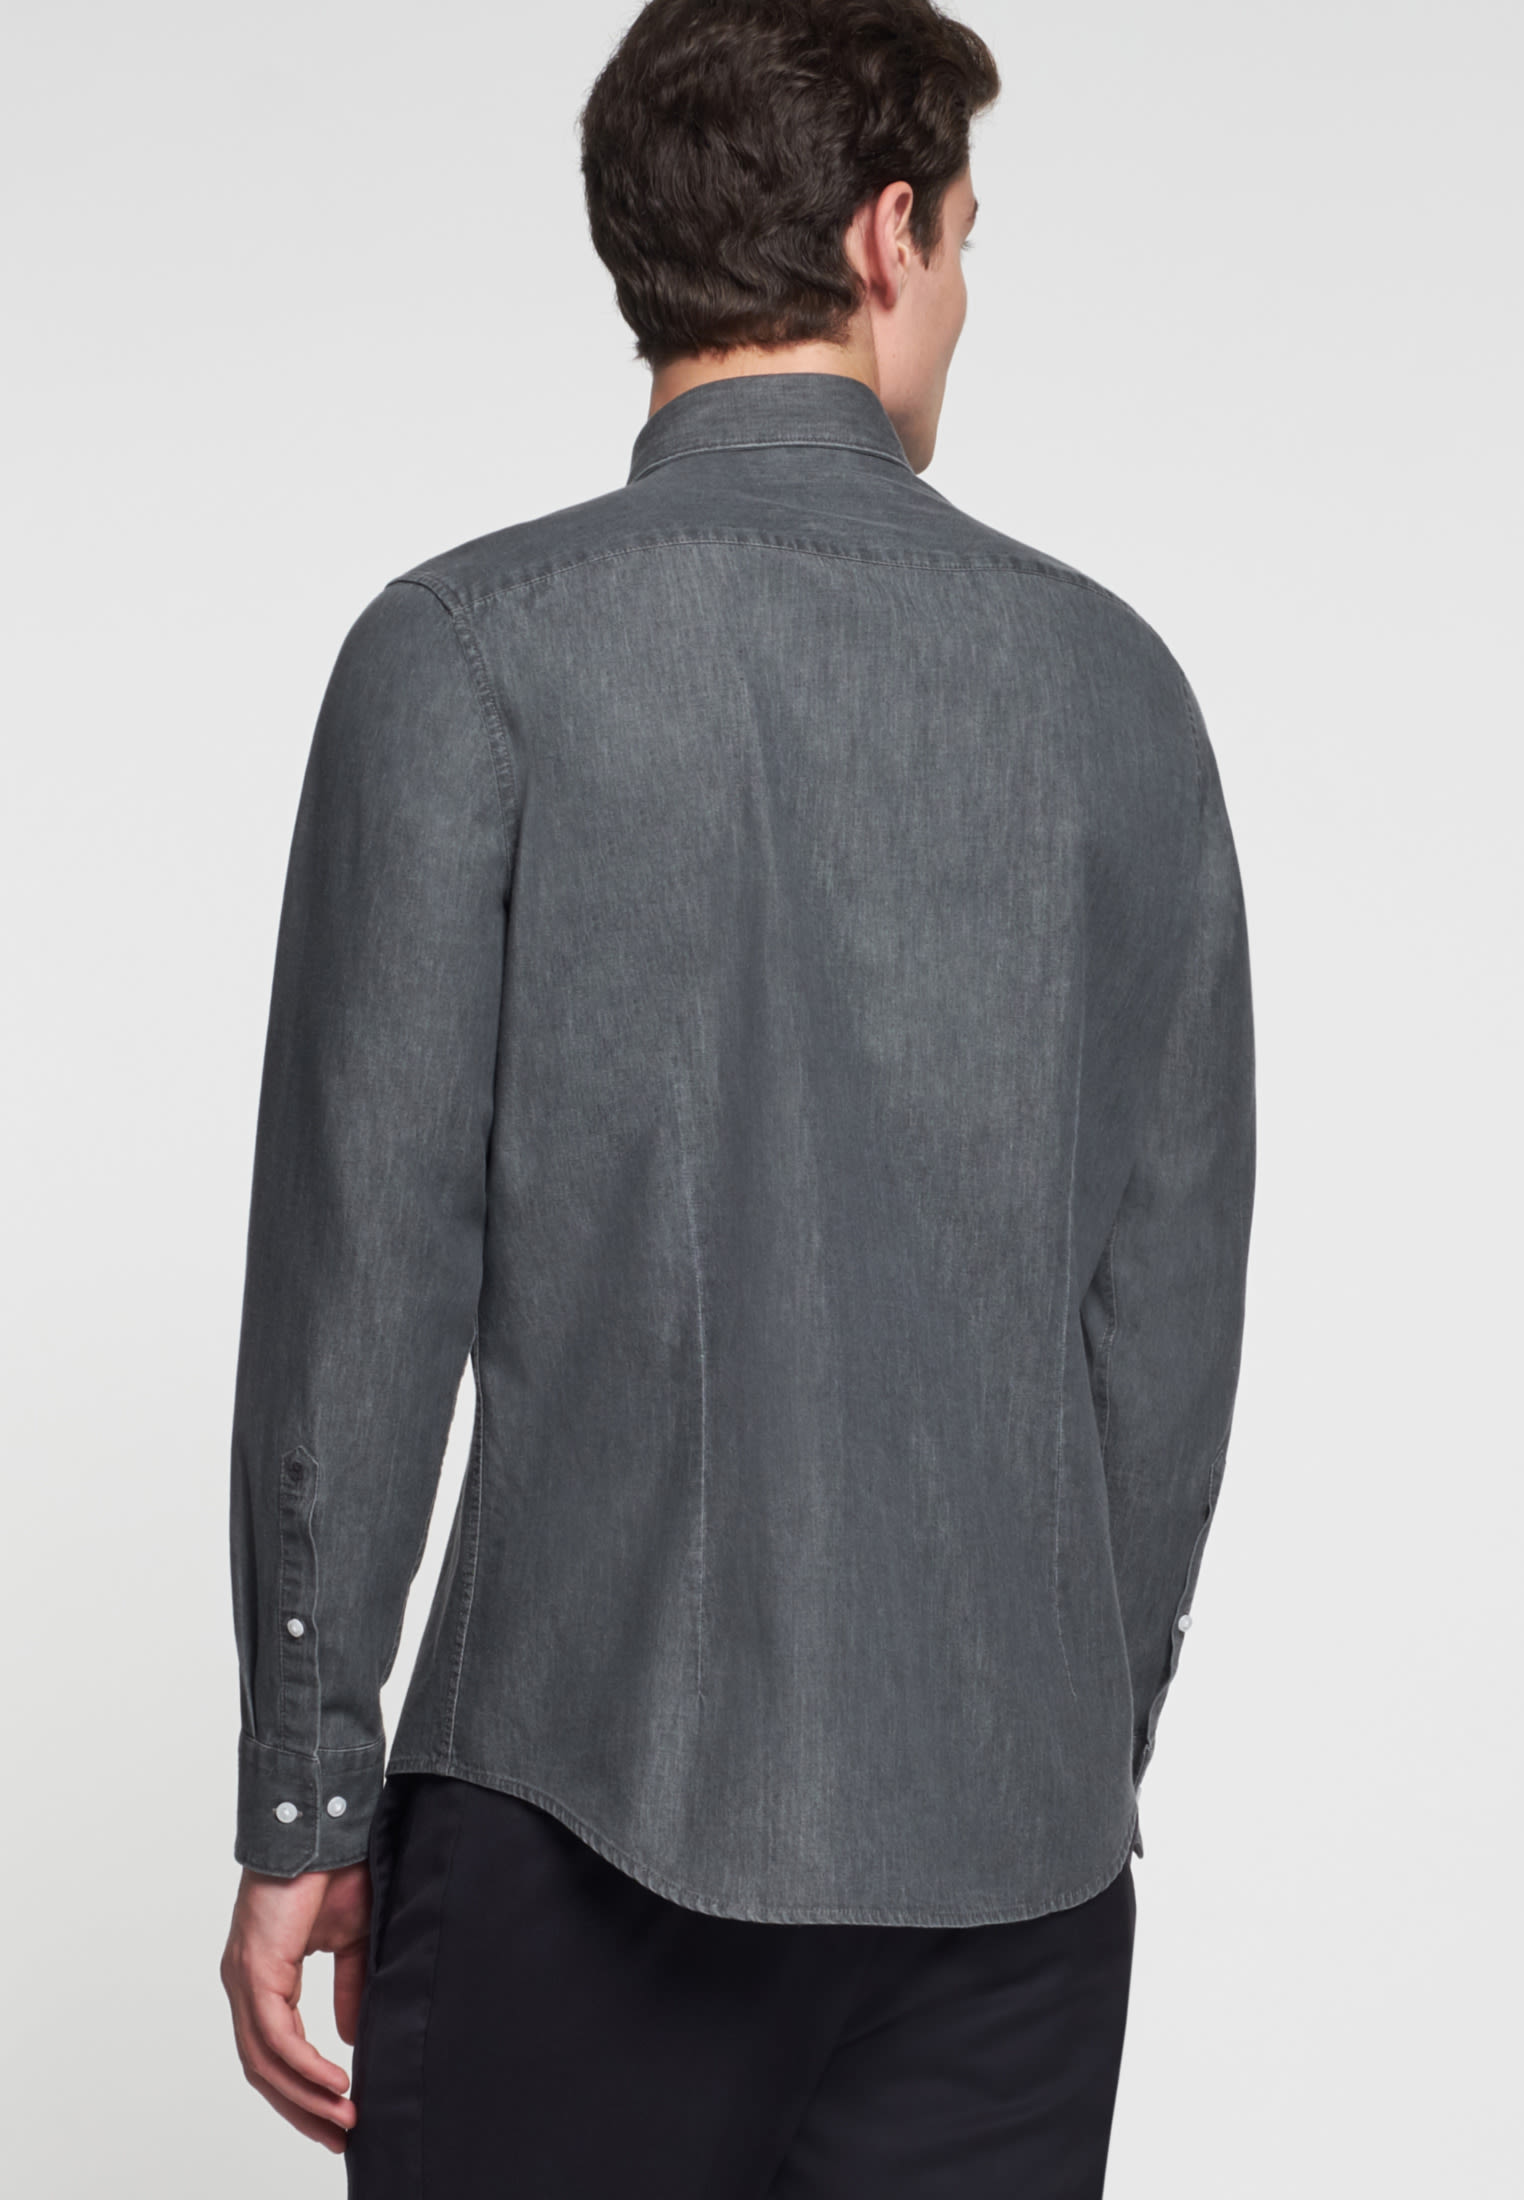 Bügelleichtes Denim Business Hemd in Slim mit Kentkragen in Grau |  Seidensticker Onlineshop